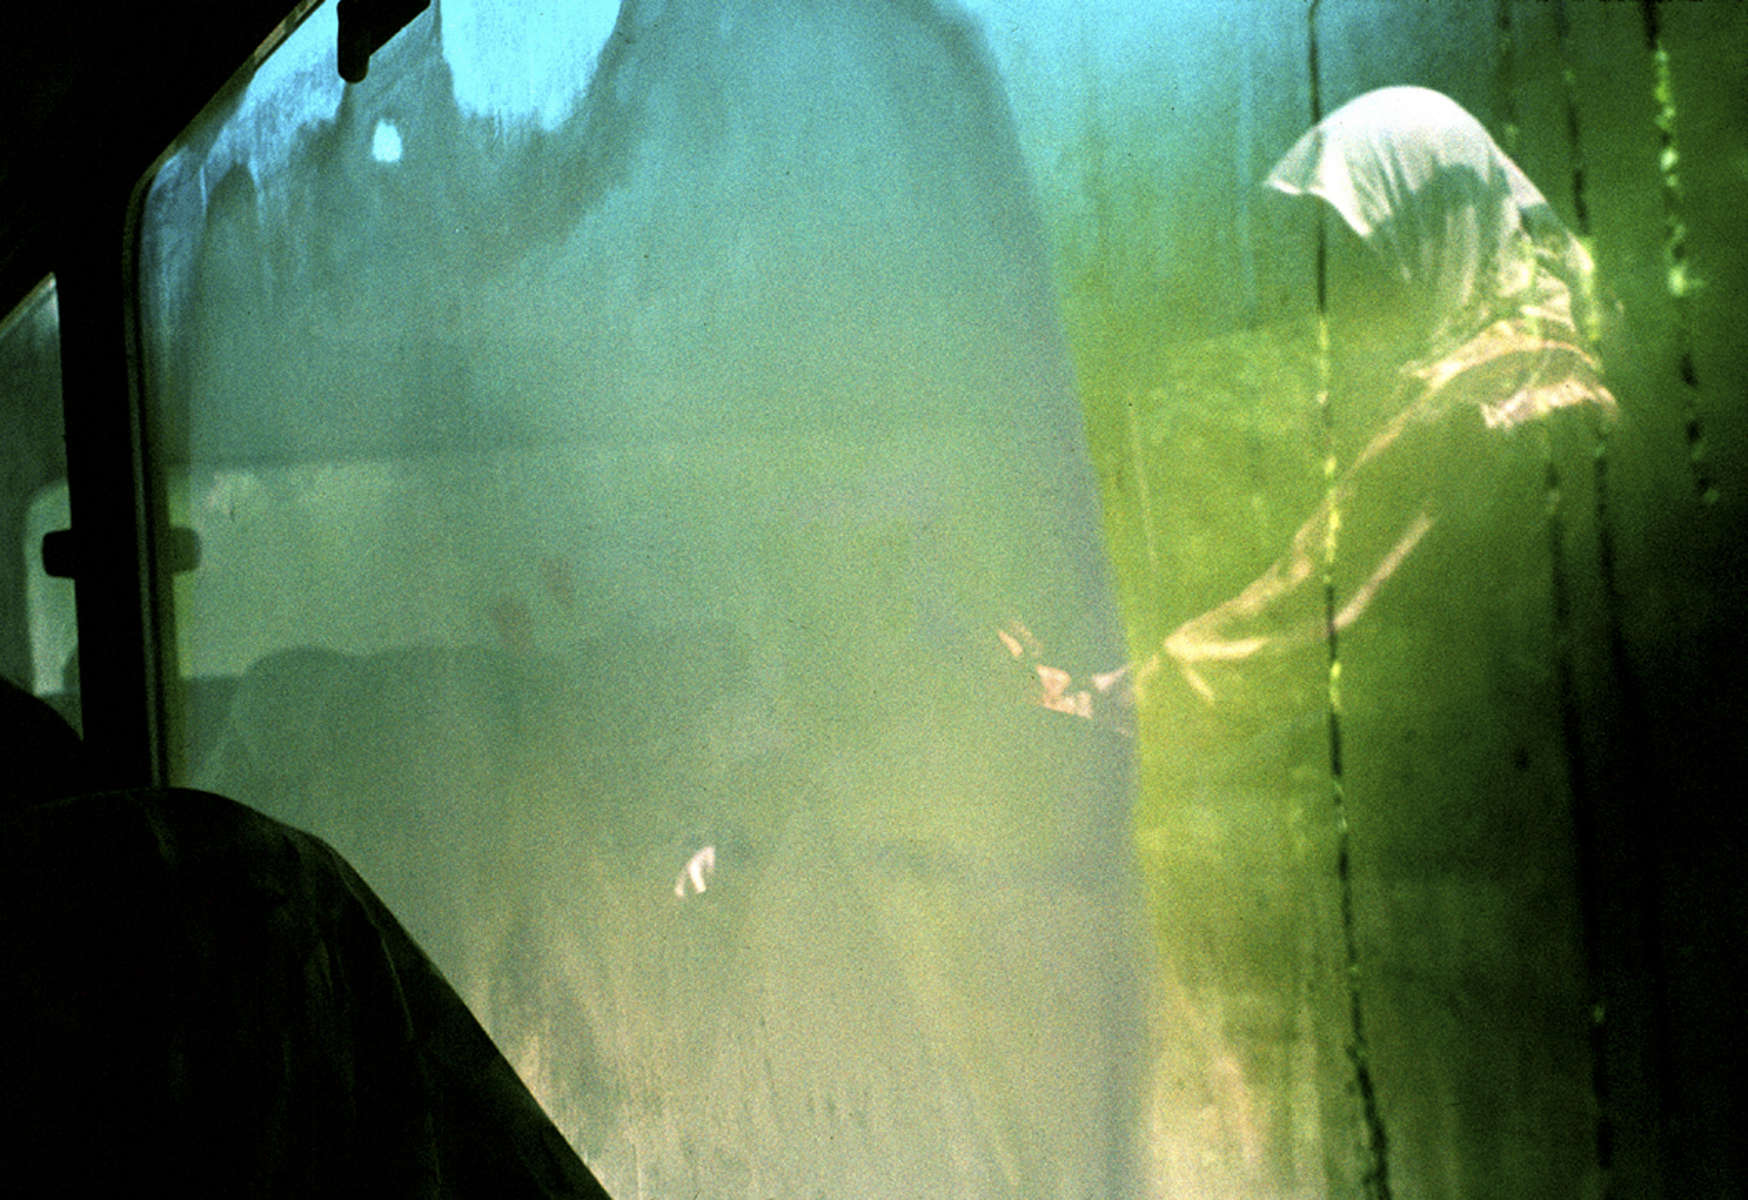 On the day groundbreaking ceremonies are held for a memorial to the 7,000 to 8,000 Muslim men and boys killed by Serbs in the 1995 Srebrenica massacre, a widow is seen reflected in bus window, where condensation has marked the surface of the glass.